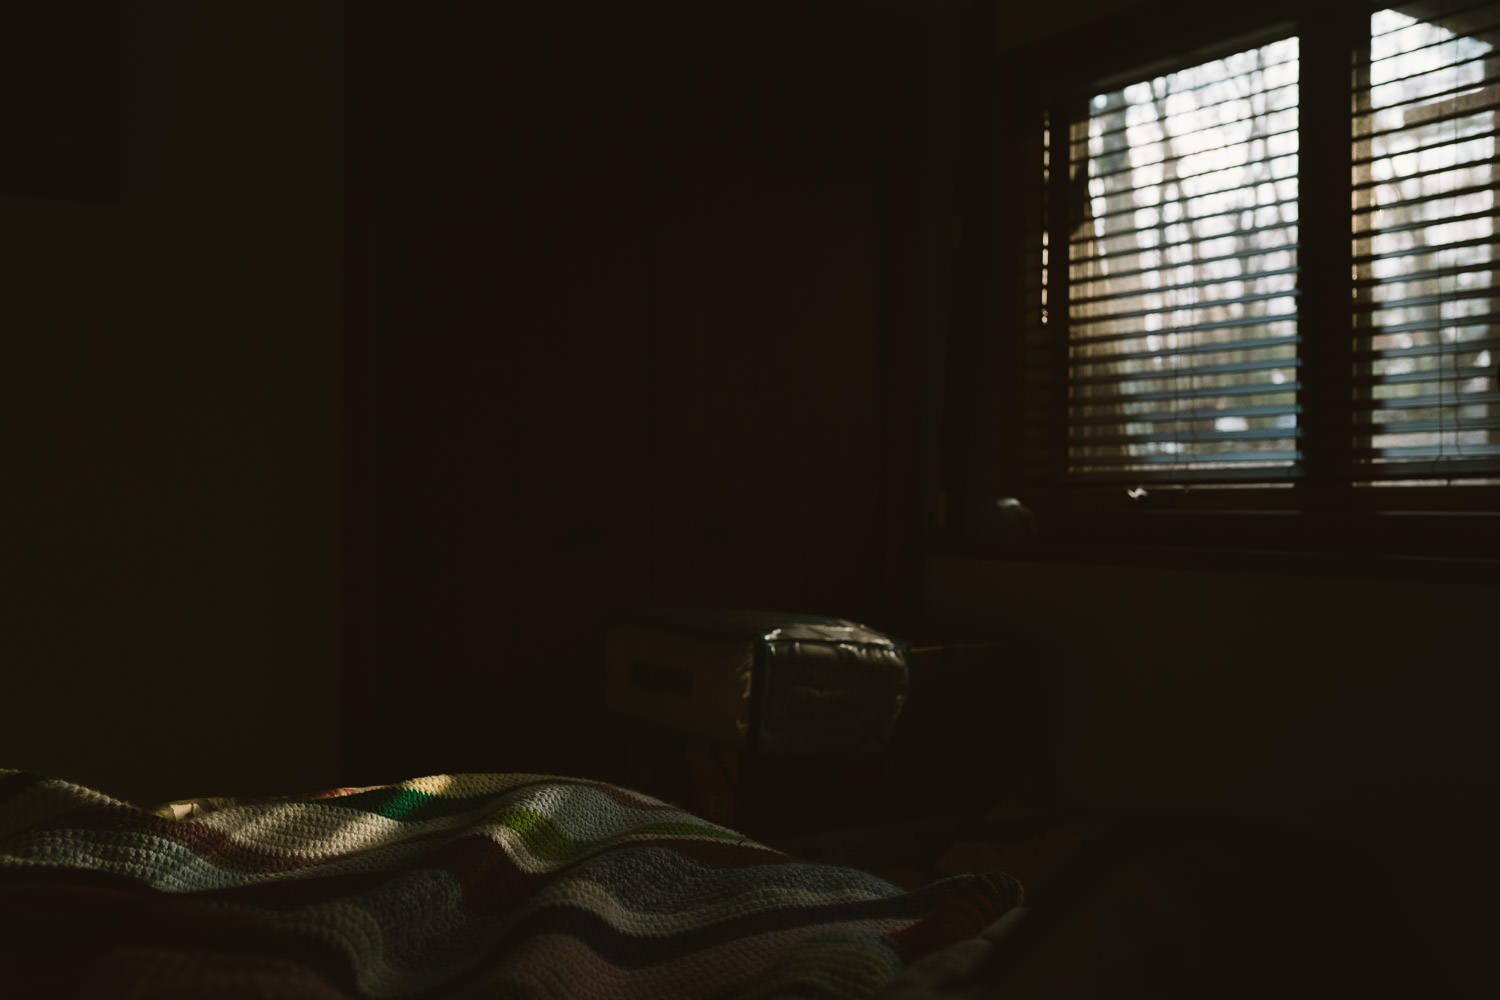 Sunlight filtering through shades in a bedroom.